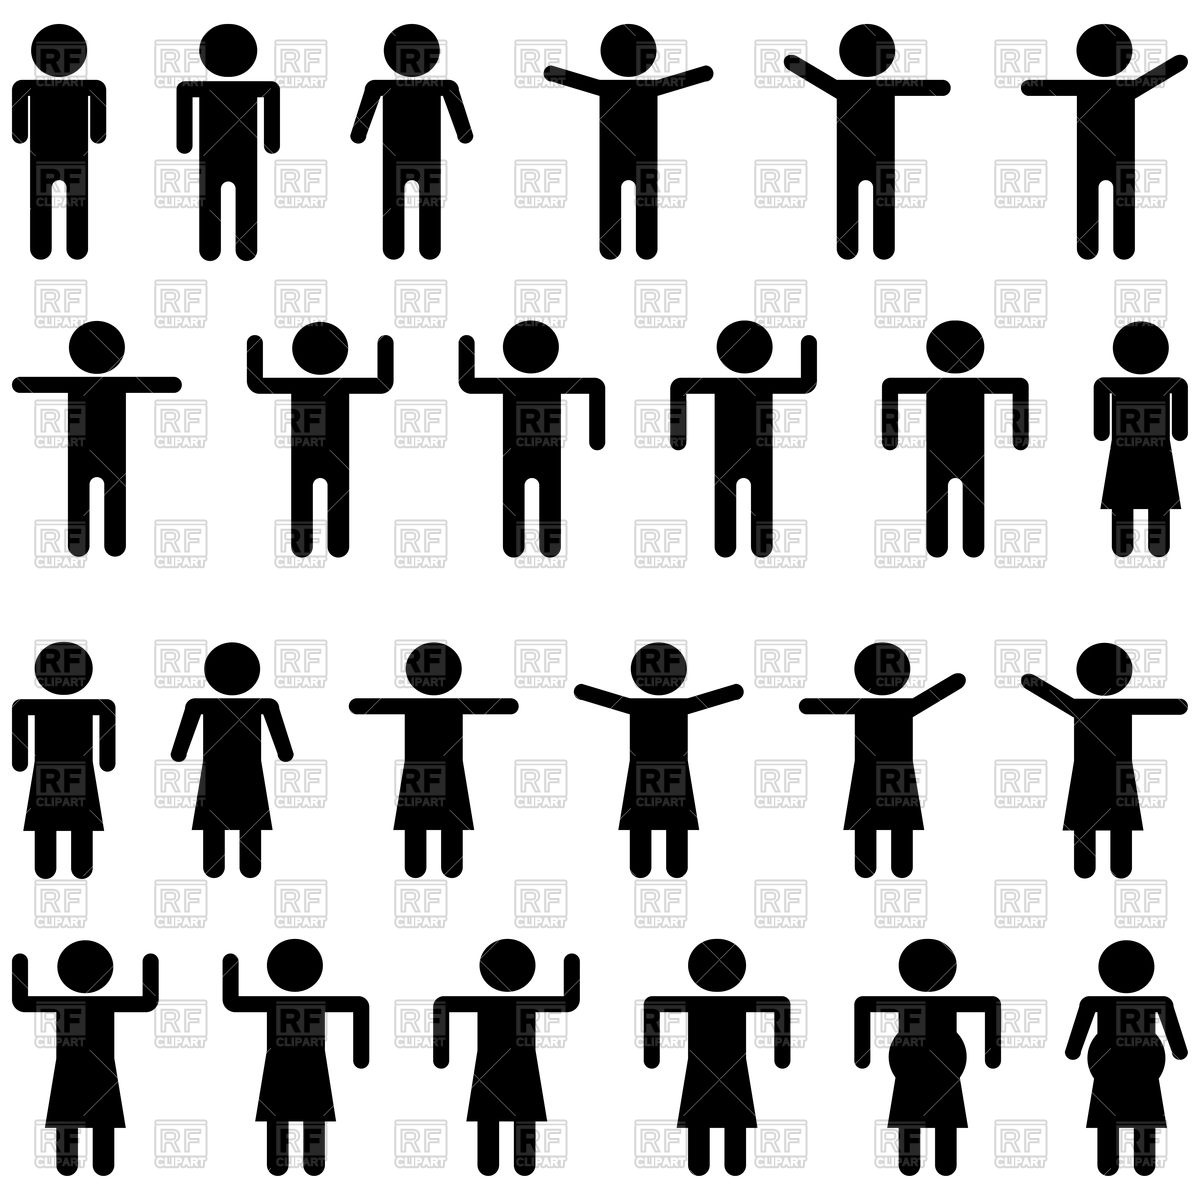 1200x1200 Black Stick Figure Or Statuette Figurines Icons Vector Image